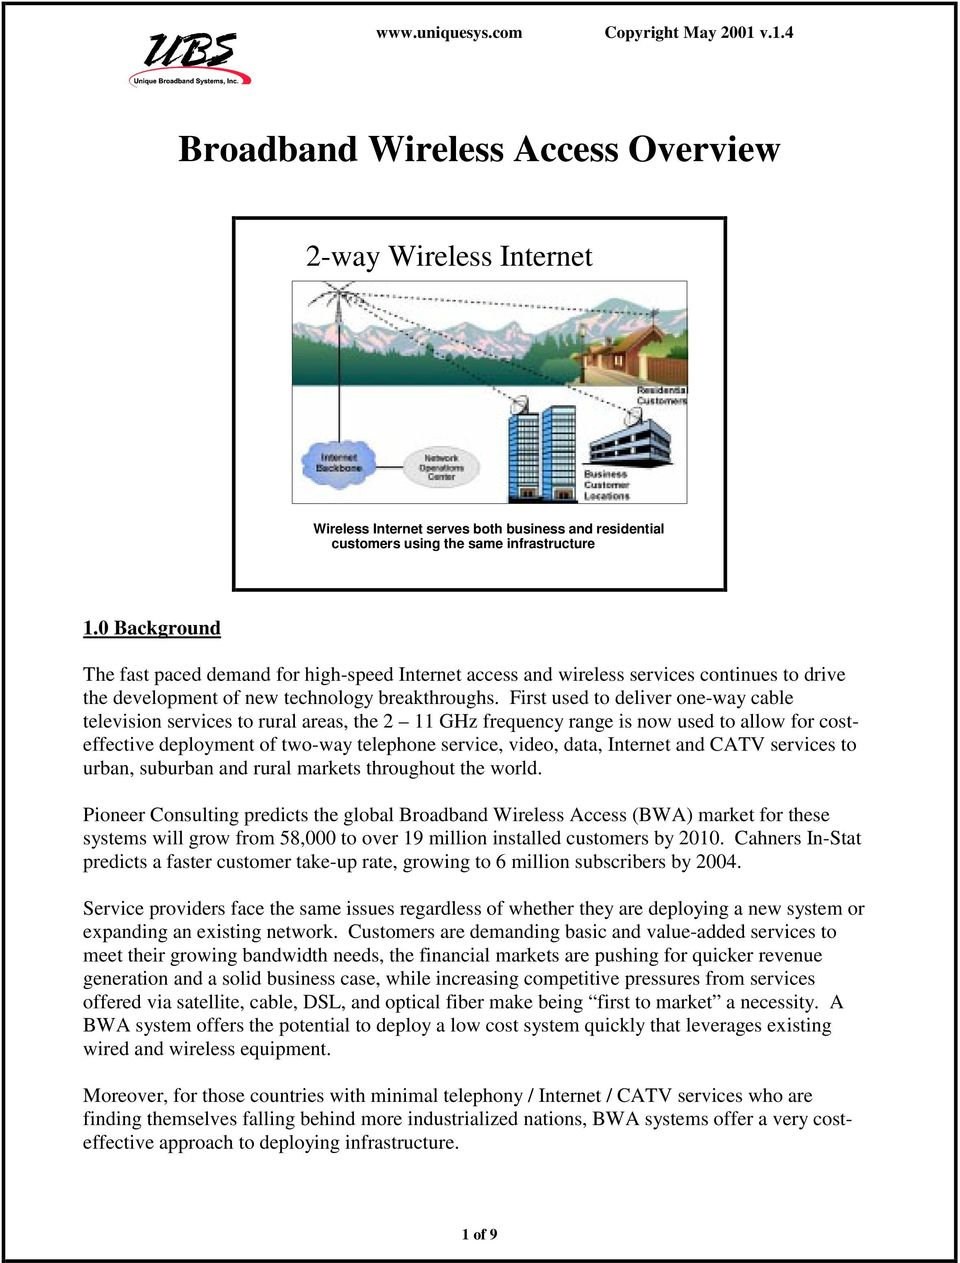 Broadband Wireless Access Overview Pdf Introduction To Catv Twoway Cable Tv System First Used Deliver One Way Television Services Rural Areas The 2